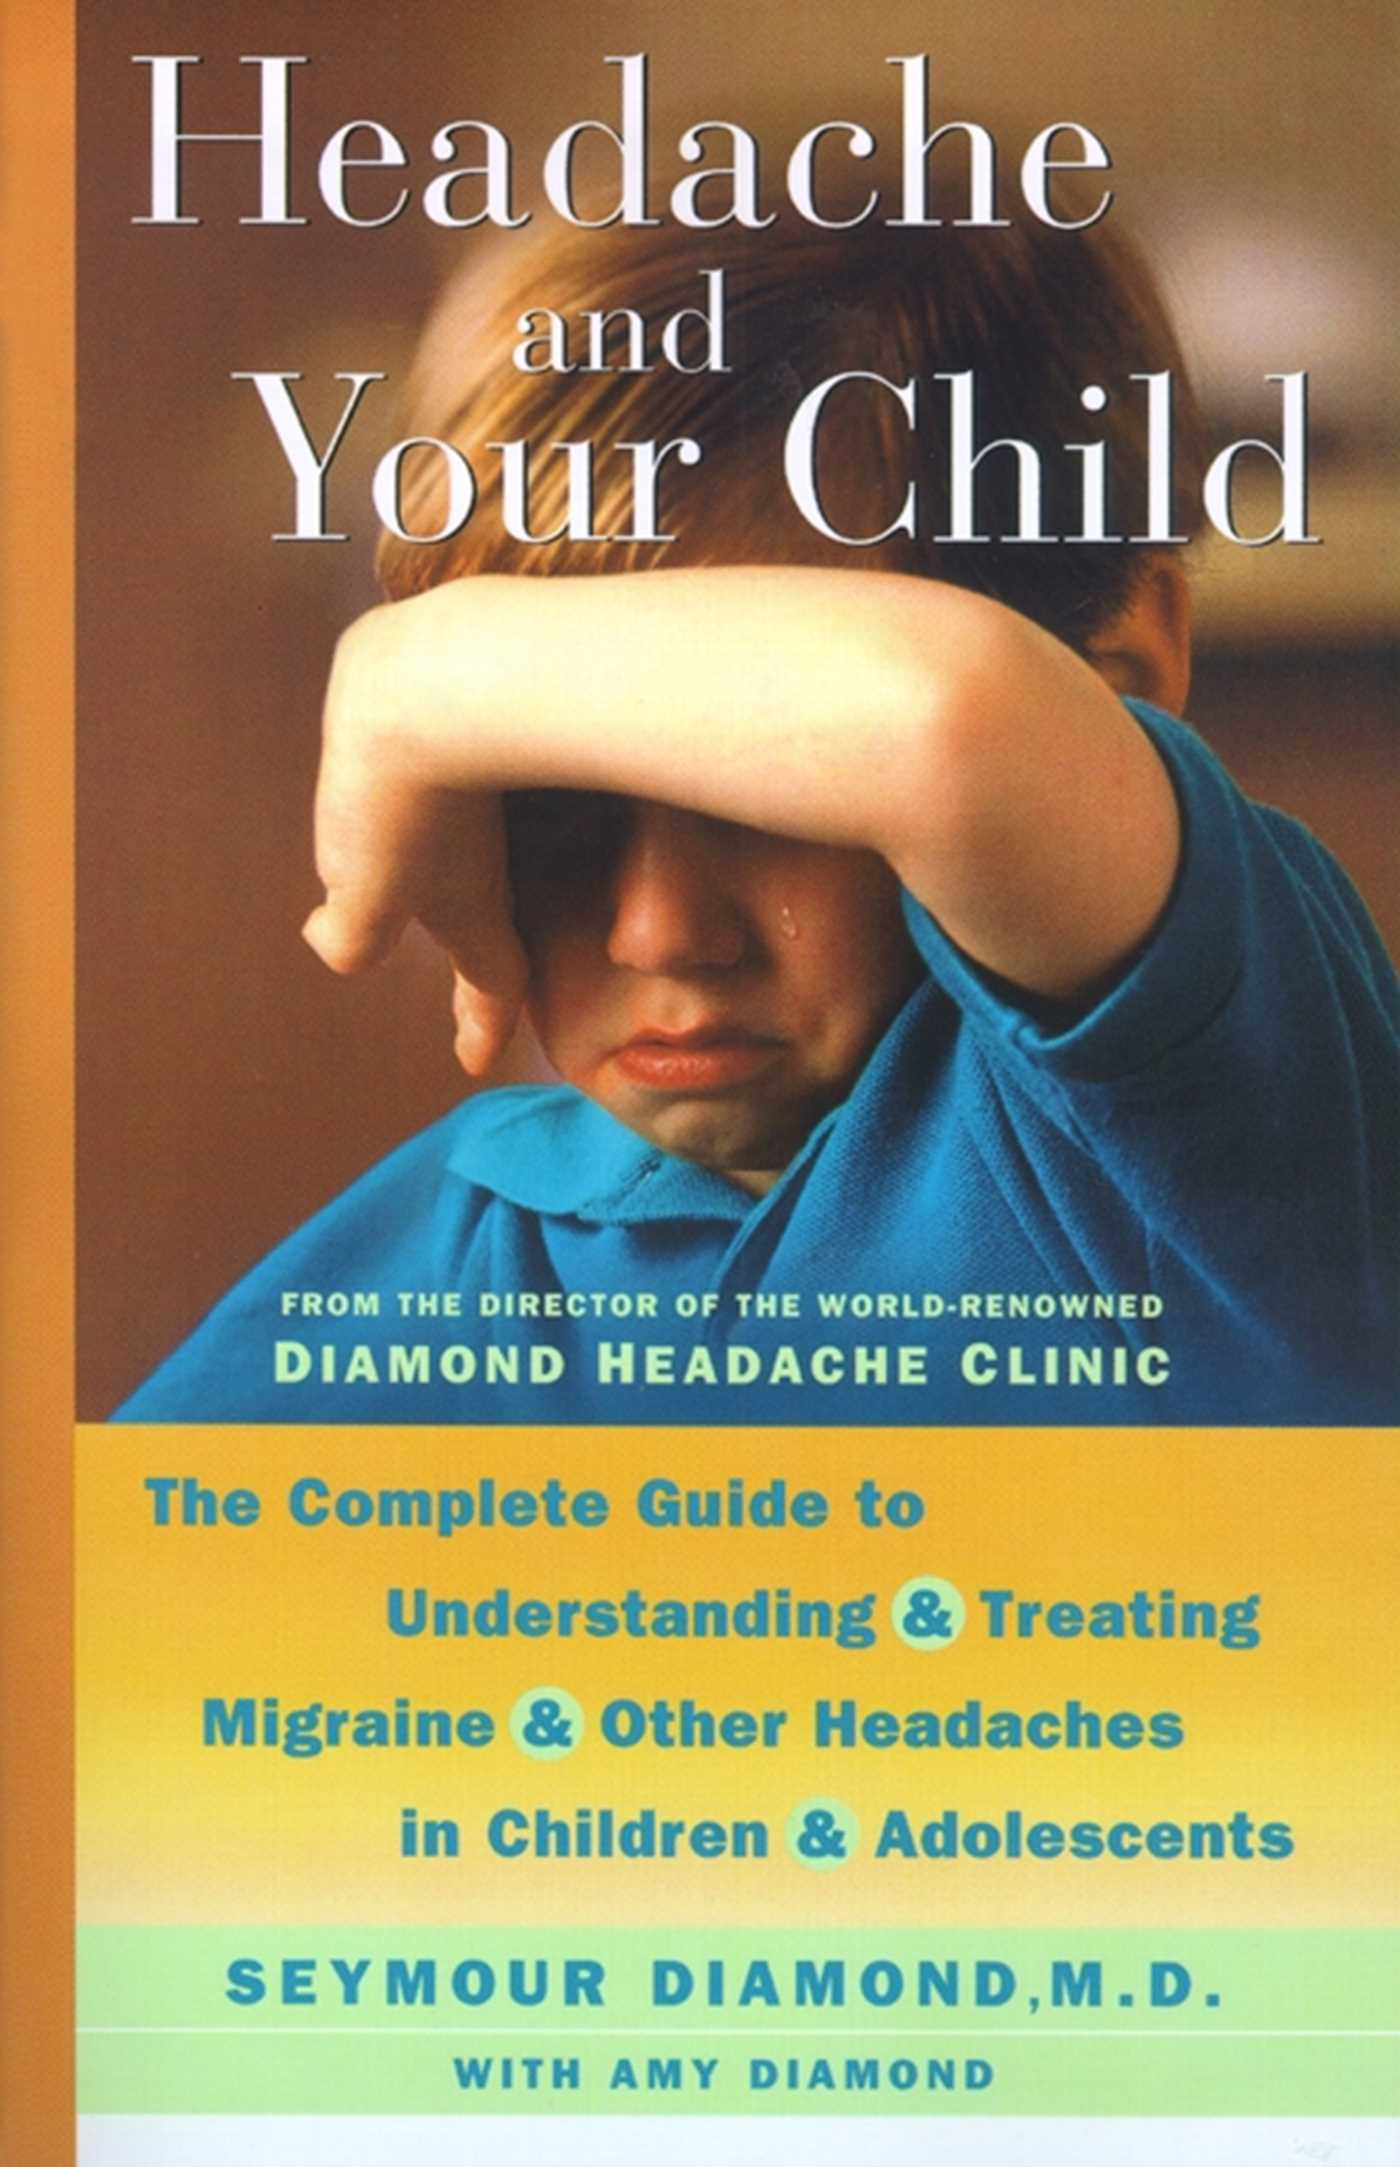 Headache and your child 9780743219723 hr